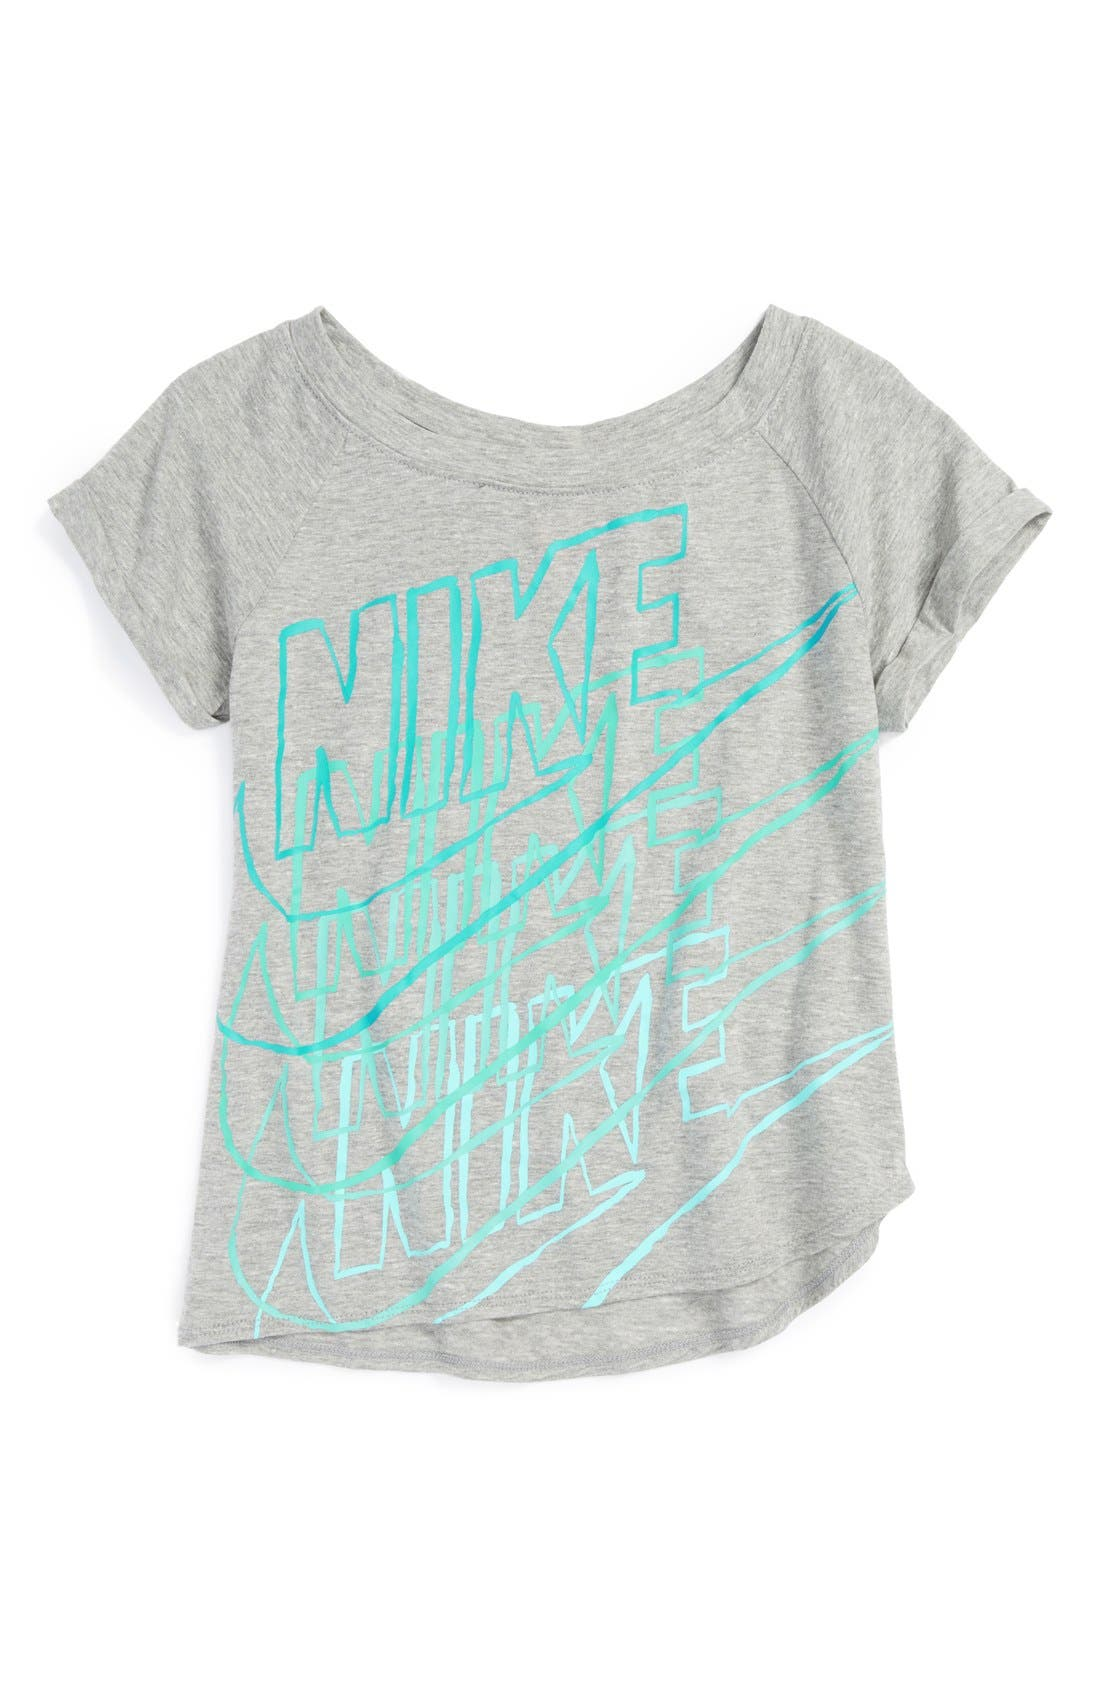 Alternate Image 1 Selected - Nike Graphic Tee (Little Girls & Big Girls)